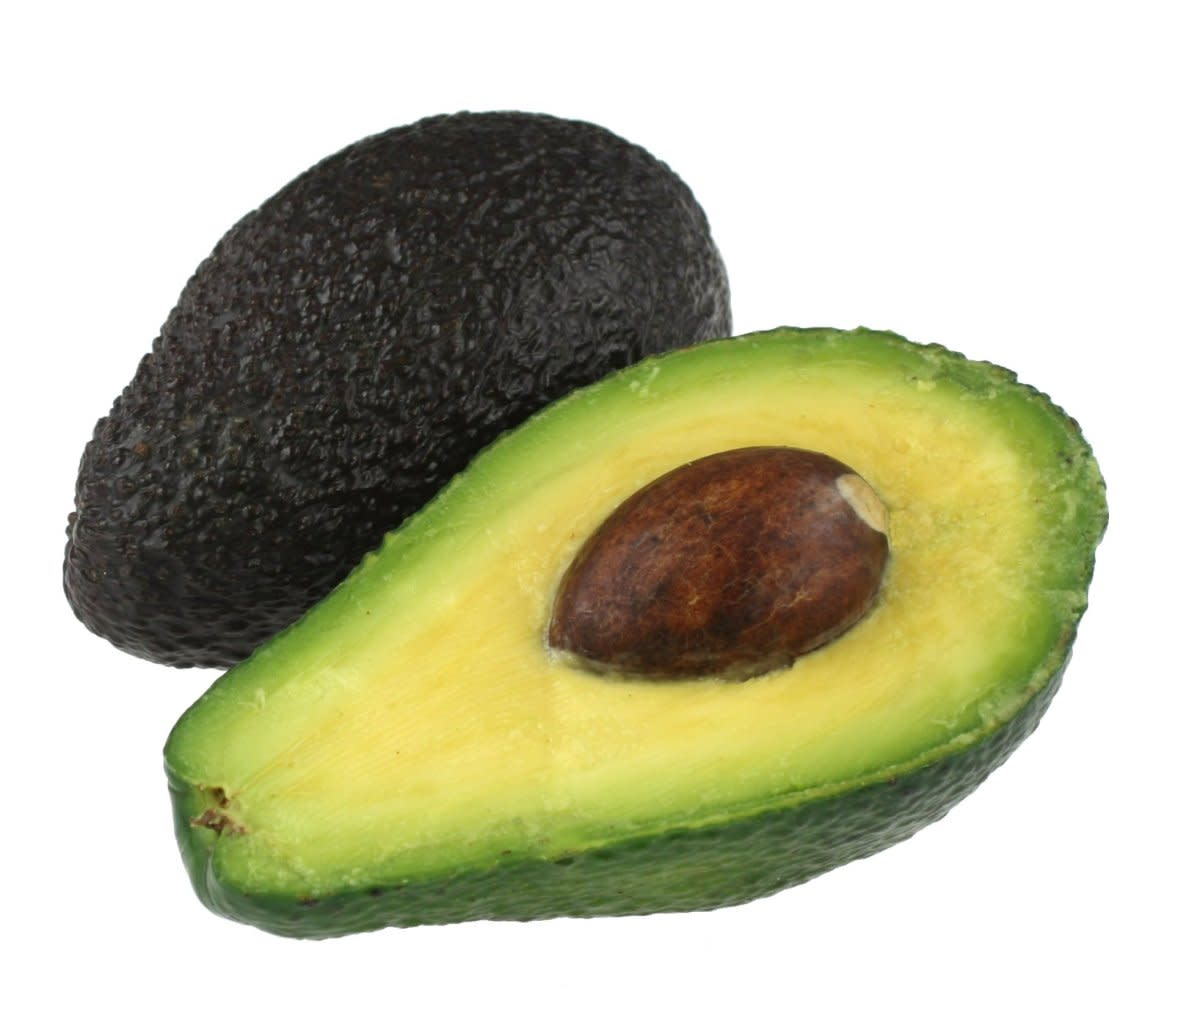 Nice ripe avocado